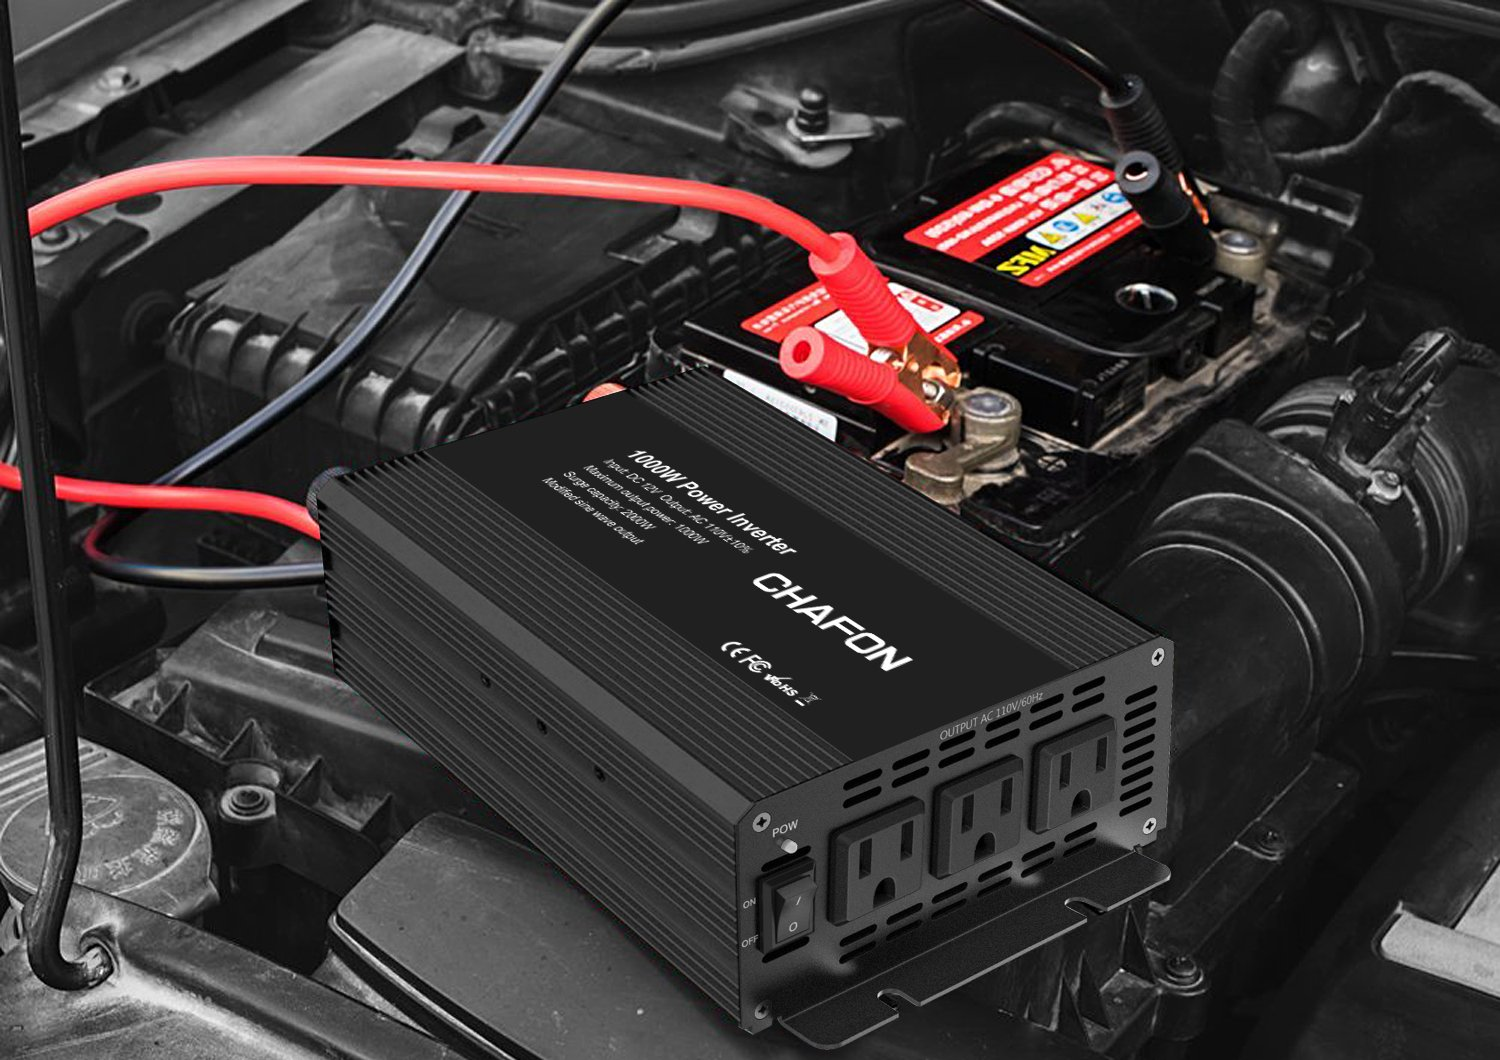 Chafon 1000W Power Inverter DC 12V to 110V with 3 AC Outlets Car Inverter for Household Appliances, RV Solar Kit in case Emergency, Outage and Hurricane - Black by CHAFON (Image #7)